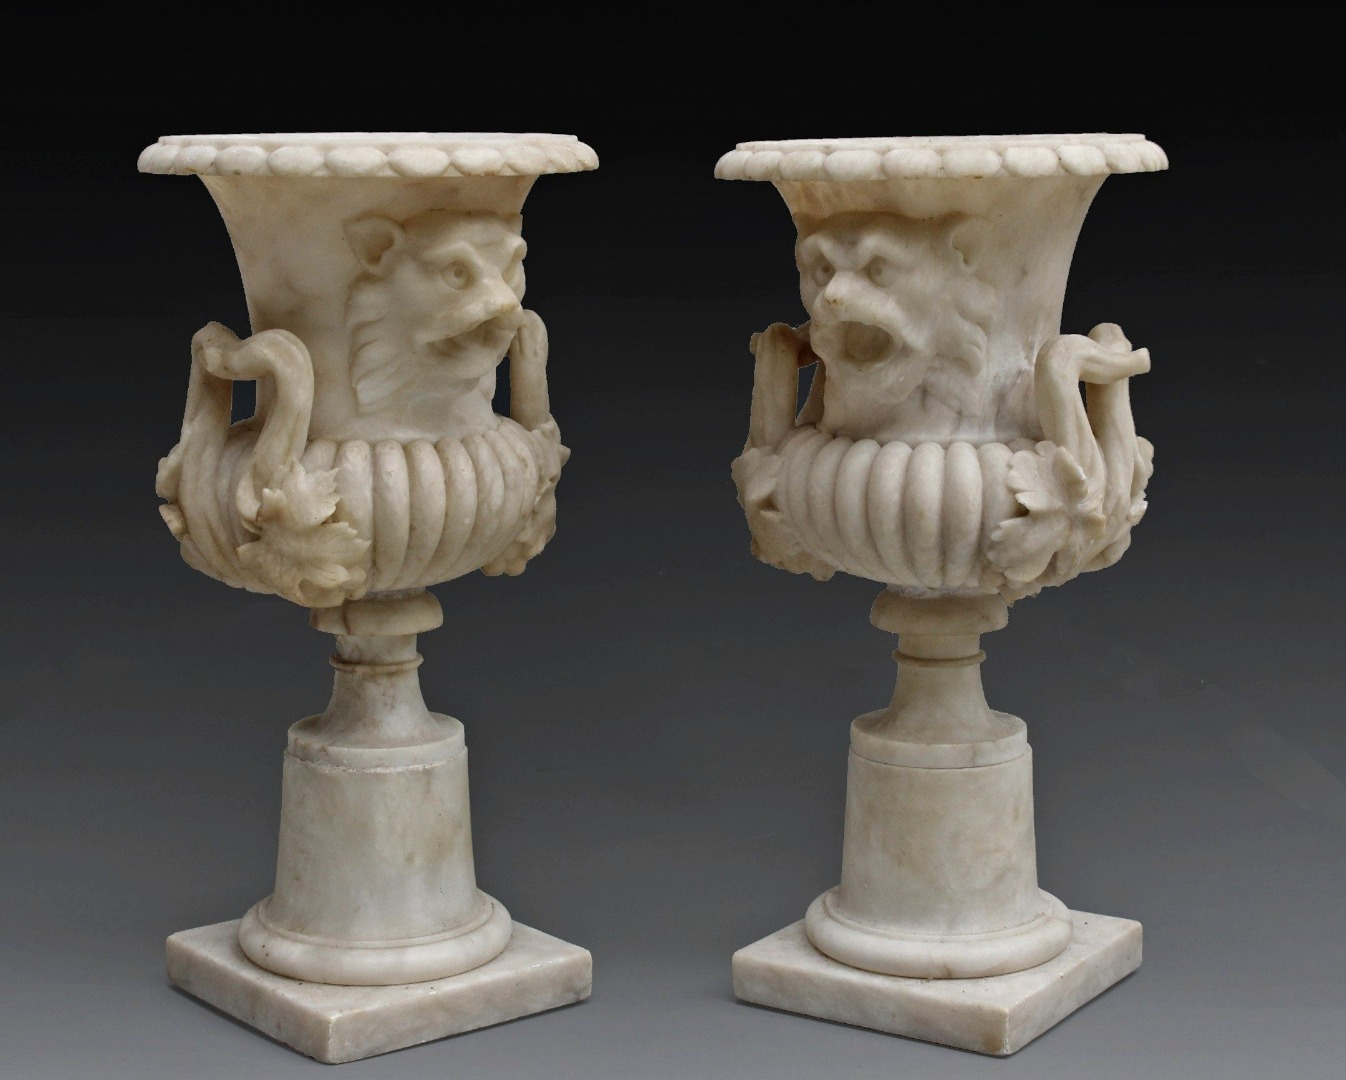 PAIR OF VASES CONVERTED INTO LAMPS